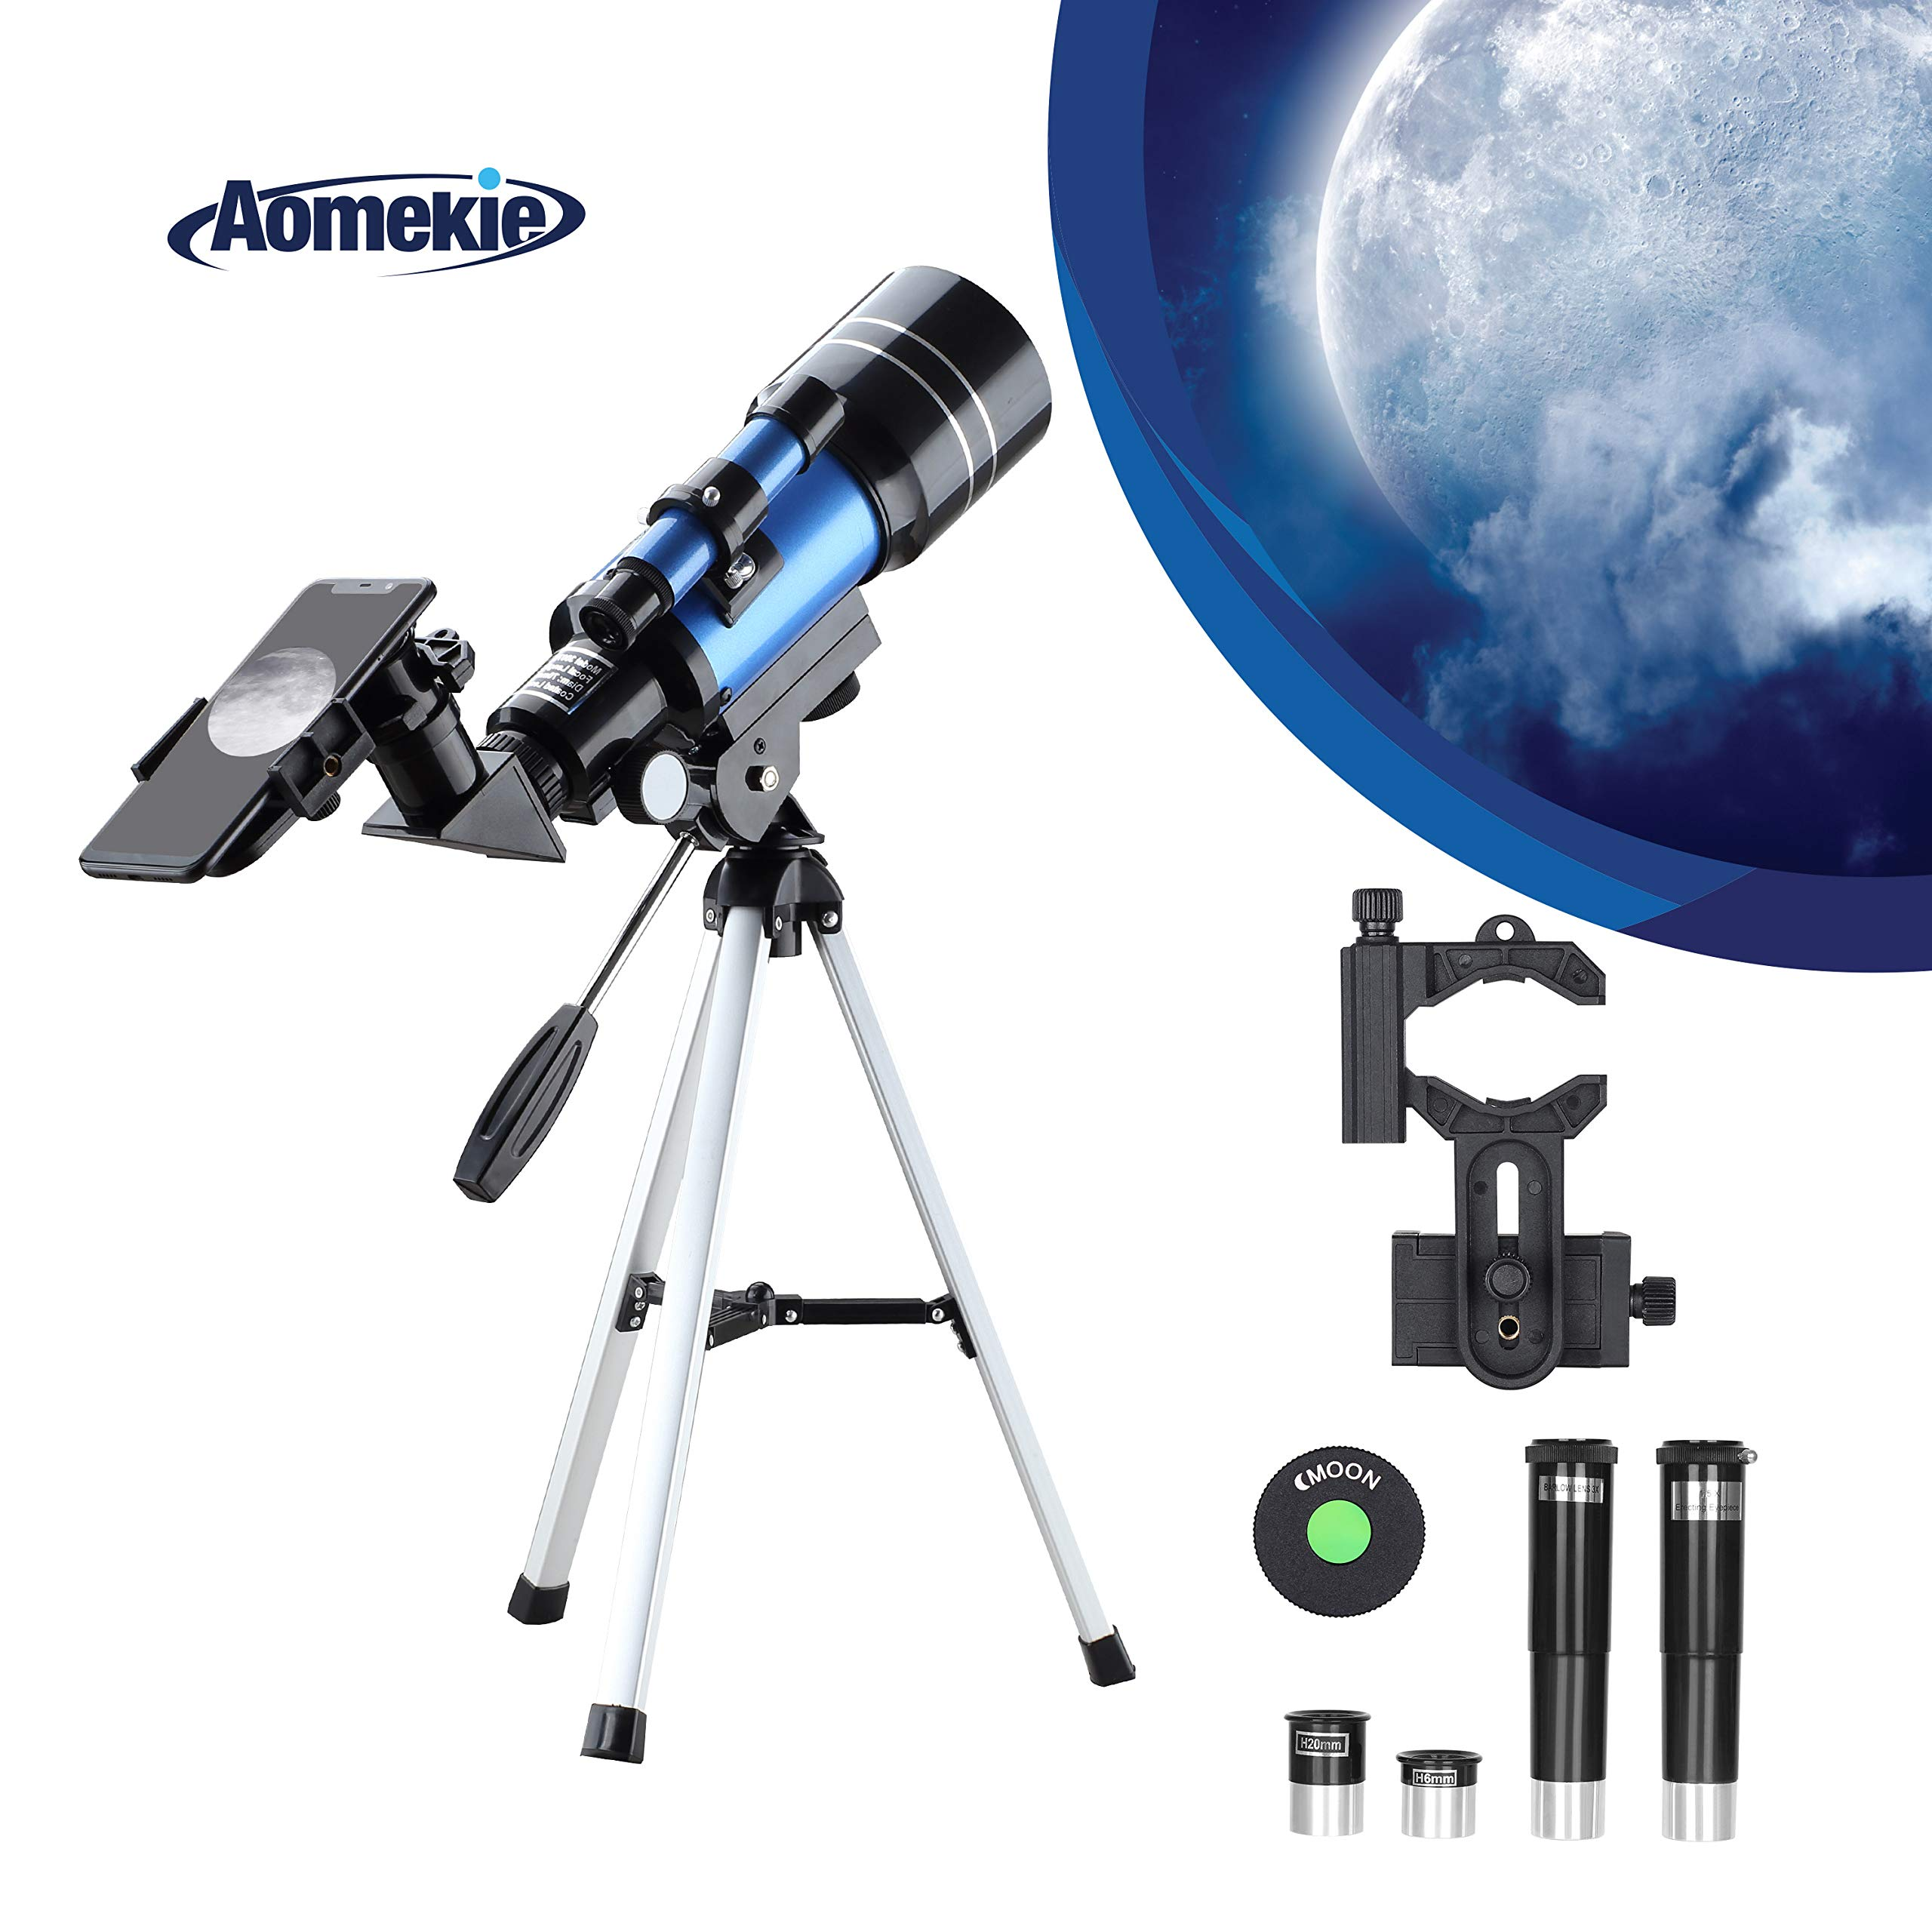 Aomekie Telescope for Kids Adults Astronomy Beginners 70mm Refractor Telescopes with Tripod Phone Adapter Finderscope 1.5X Erecting Eyepiece 3X Barlow Lens by AOMEKIE